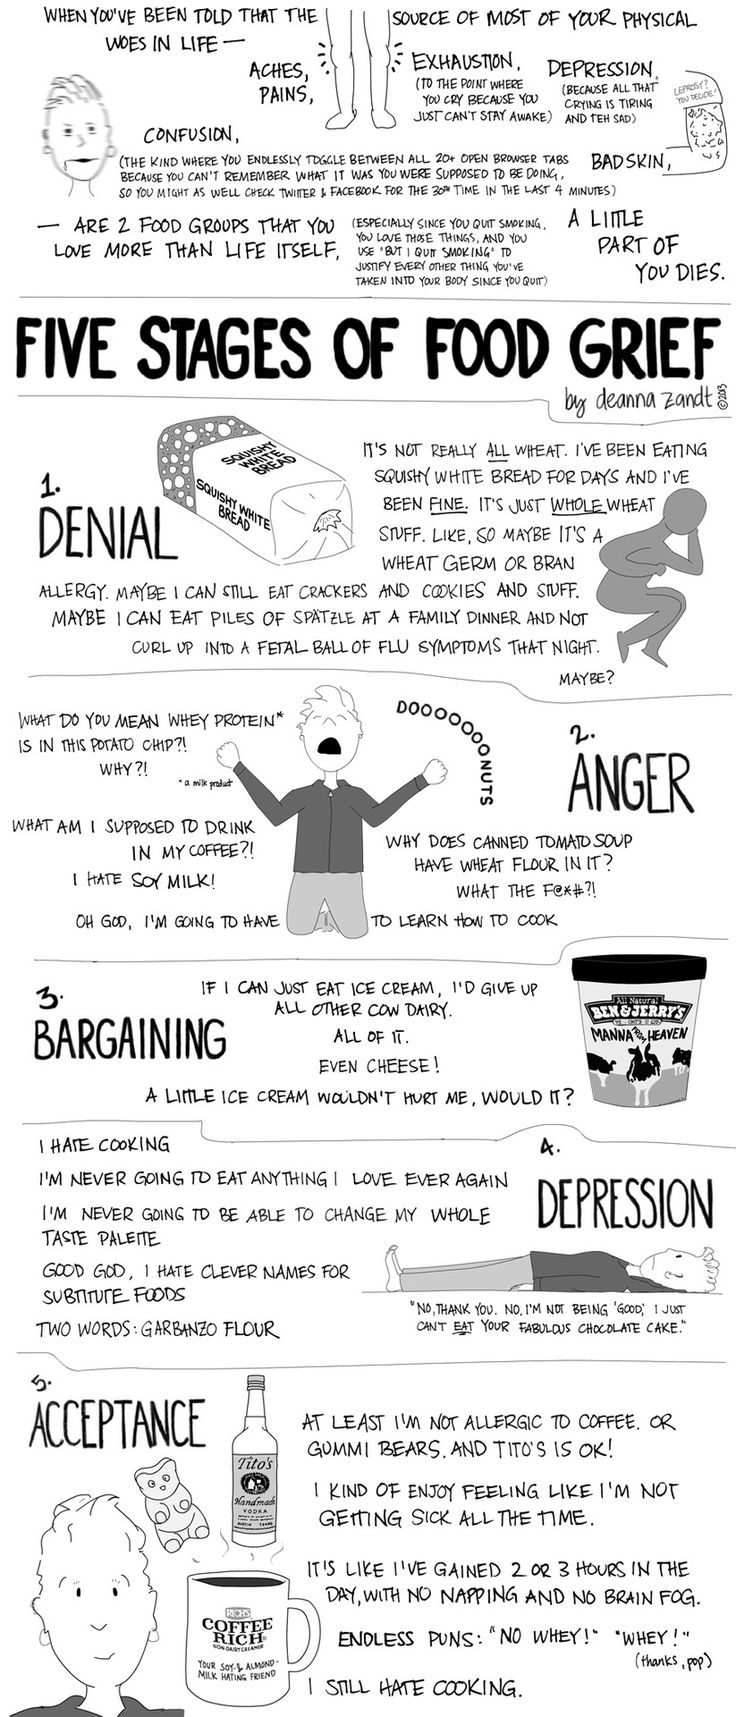 """Five Stages of Food Grief - haha this almost made me cry because this all happened to me pretty much to a T!!! Haha """"It's like I've gained 2-3 hours in a day, with no napping and no brain fog!"""" Lmfao for real but more like I've gained 6-7 more hrs ... You've got no idea lol yay!"""